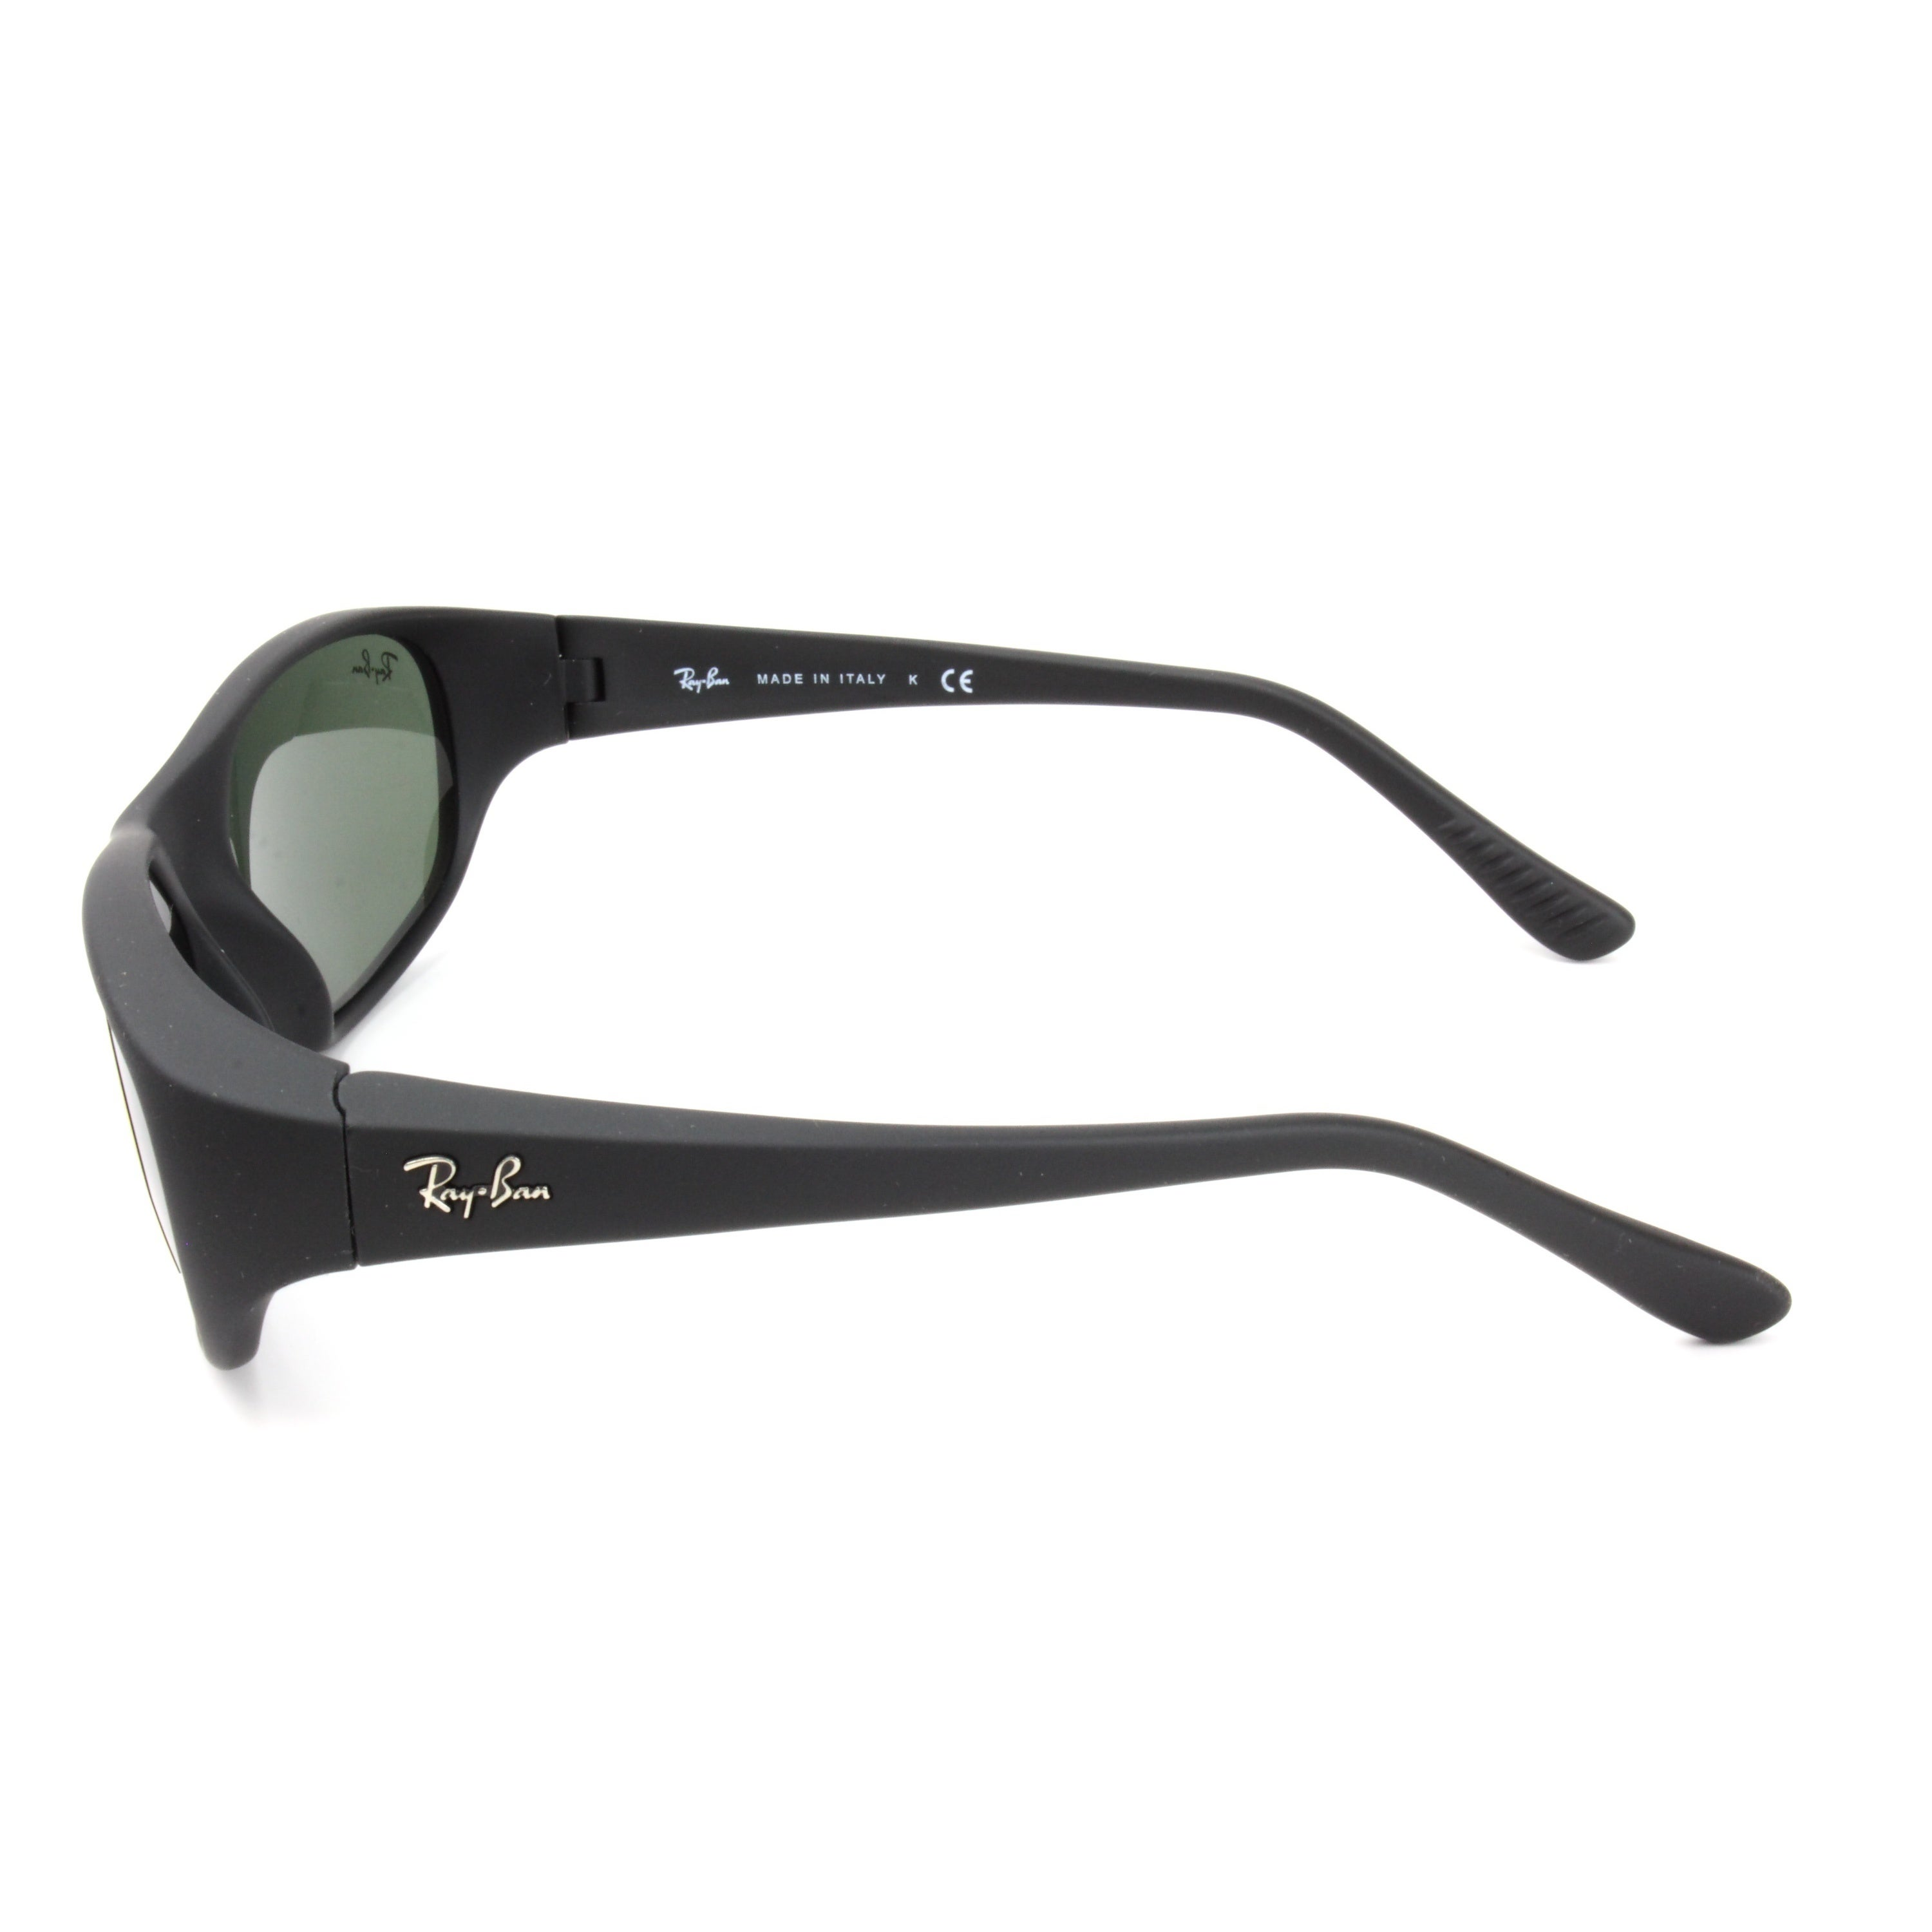 a0454ef9e4c Shop Ray-Ban DADDY-O SQUARE WRAP SUNGLASSES RB 2016 W2578 - Free Shipping  Today - Overstock - 10022925